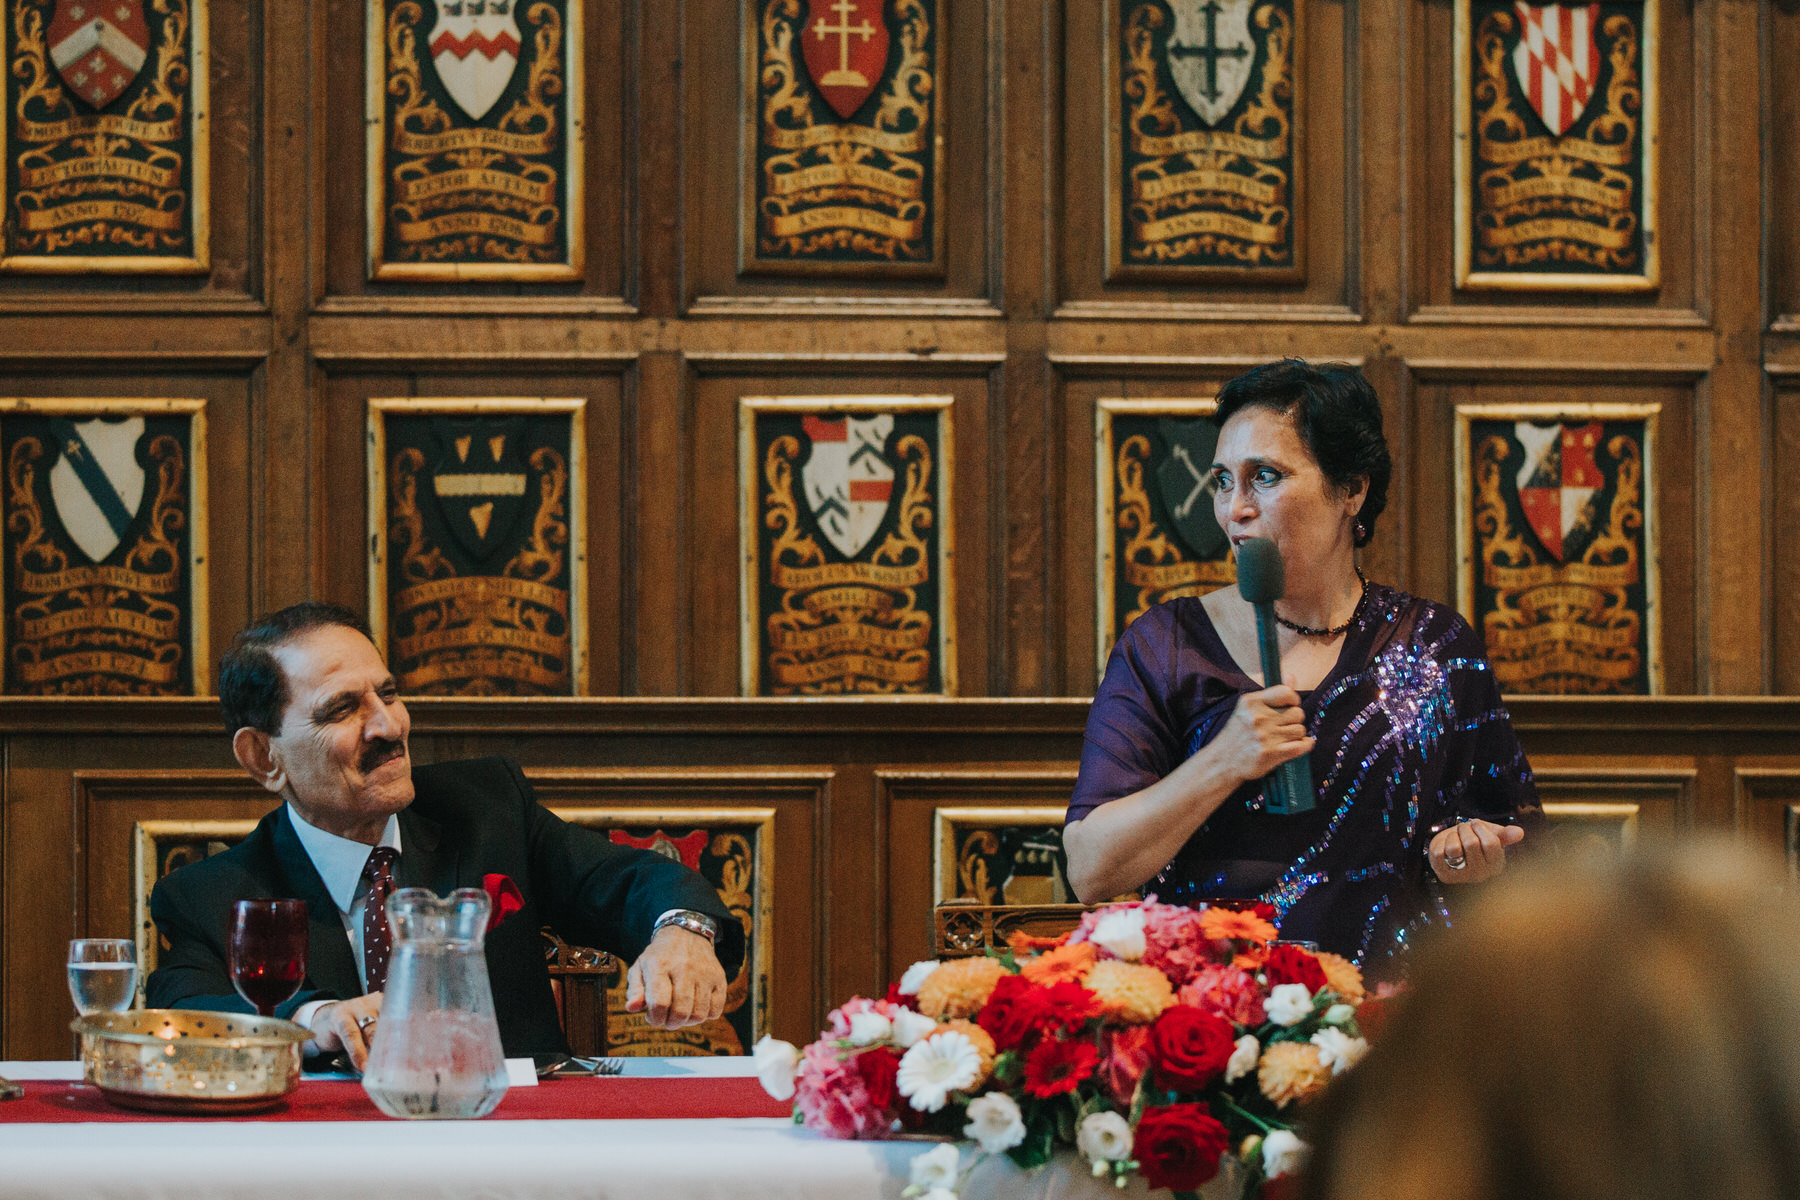 204-Anglo-Asian-London-Wedding-speeches-grooms-mother-Middle-temple.jpg